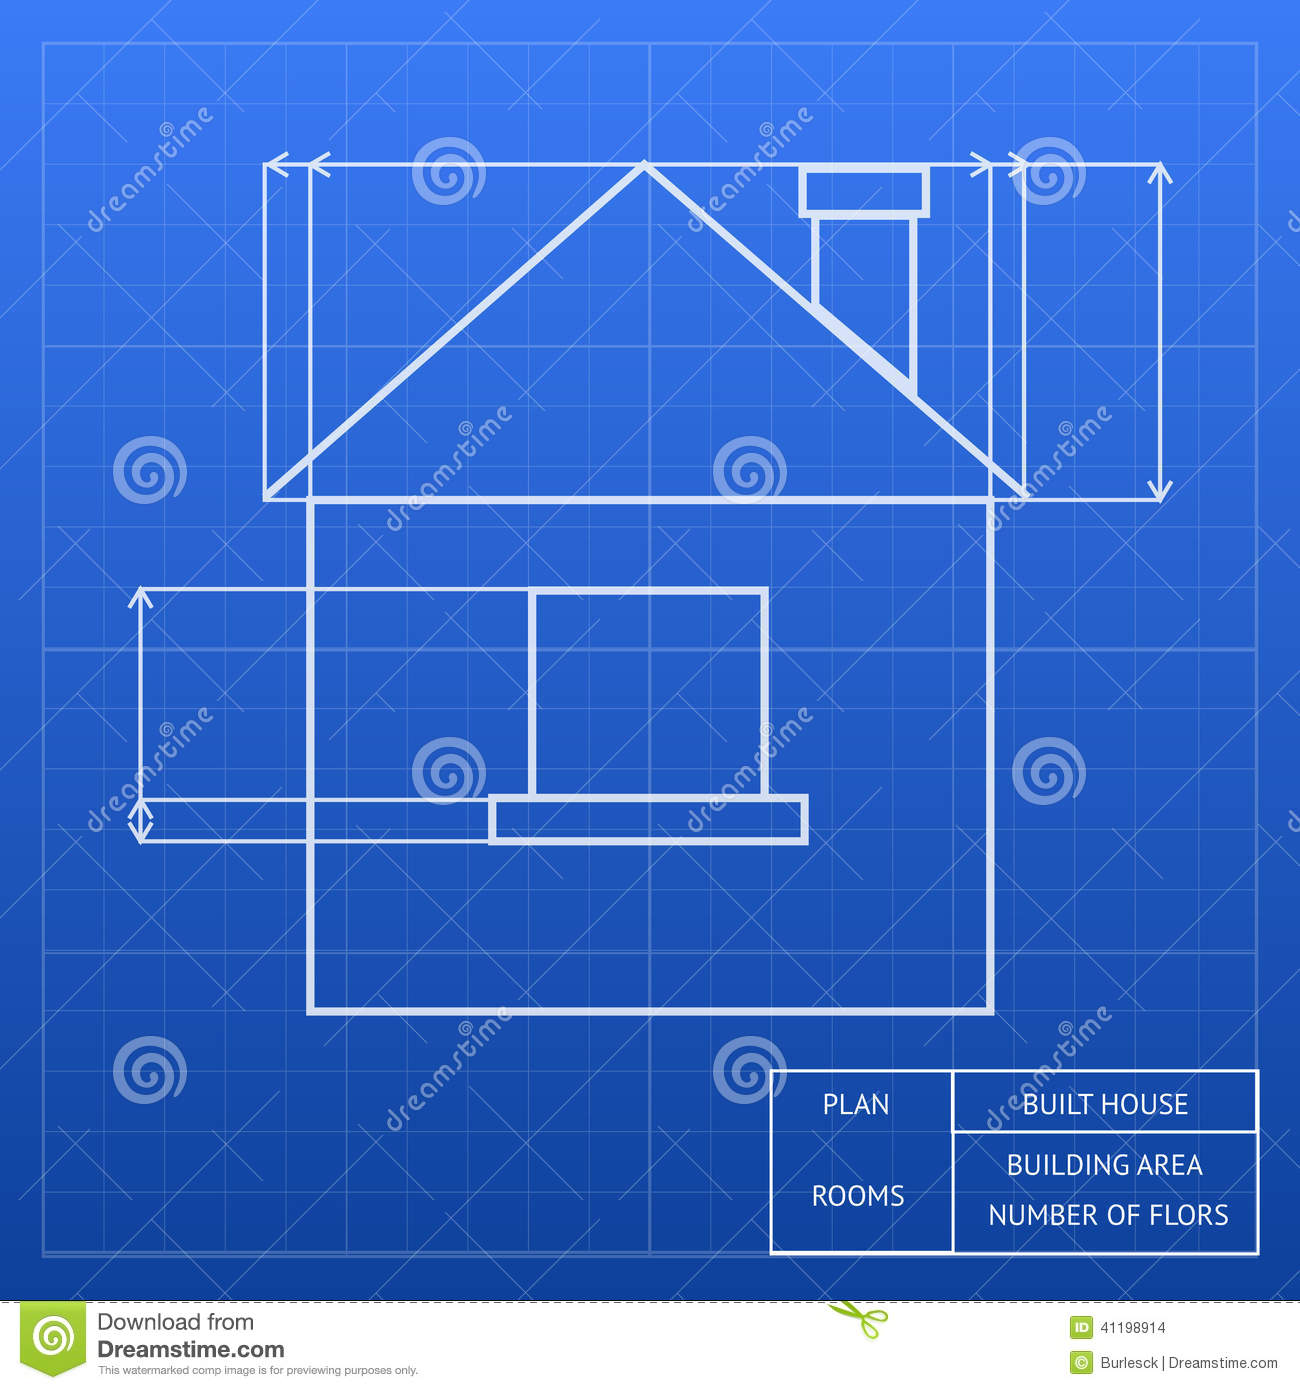 Blueprint Of A House Design Stock Vector Image 41198914